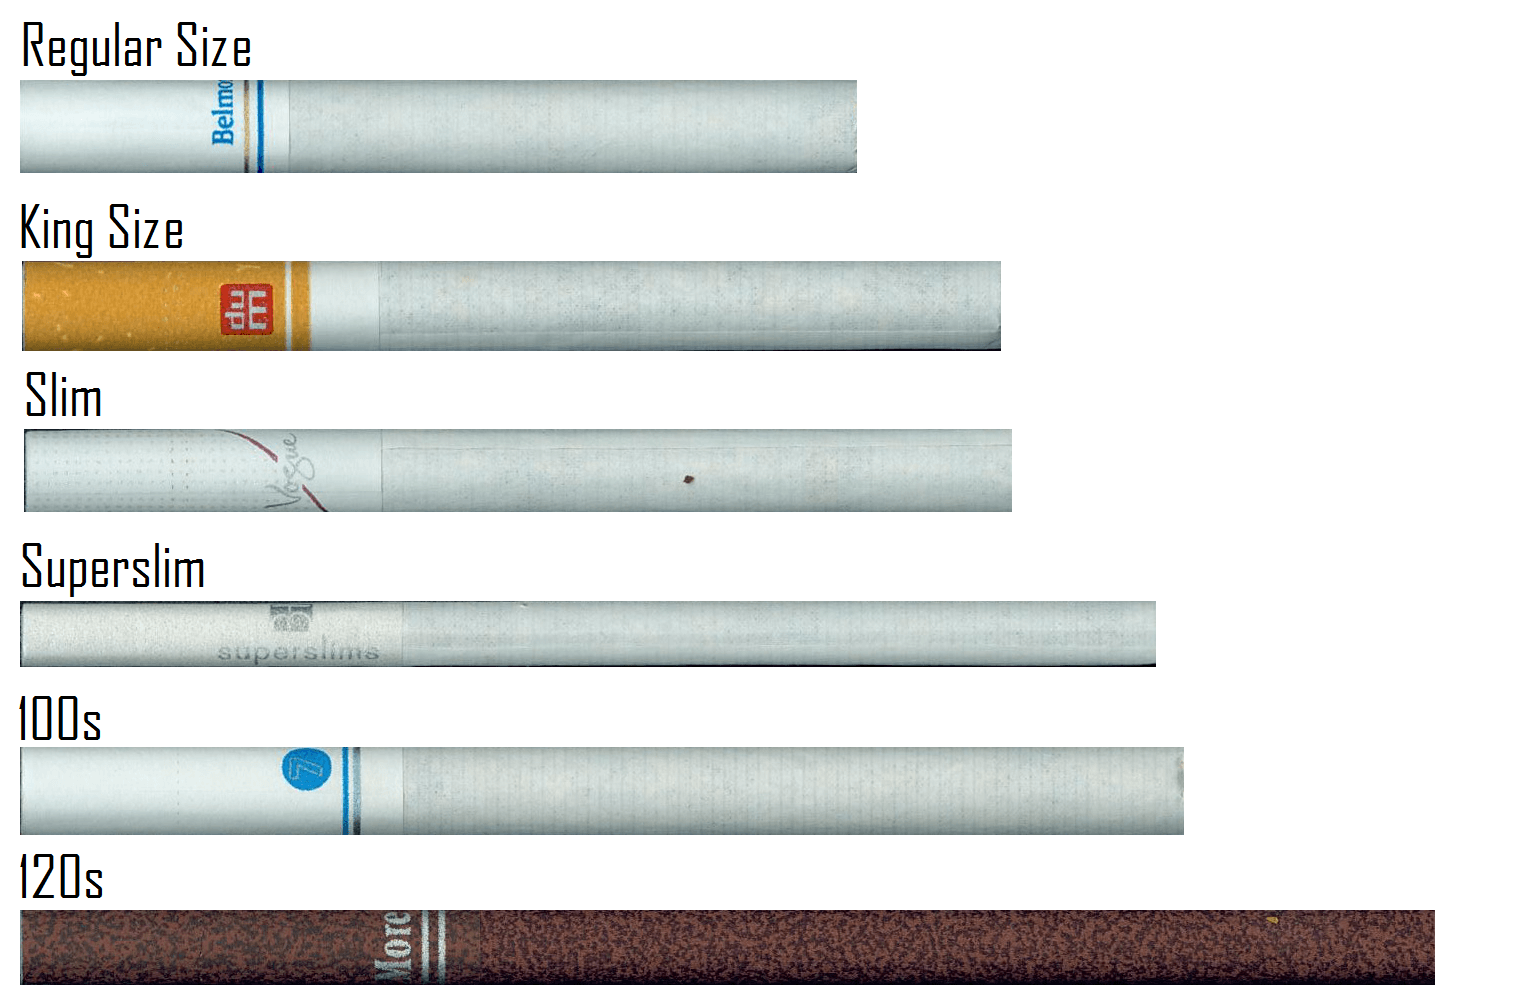 The role of 'Empty Cigarette Tubes' in Cigarette Manufacturing